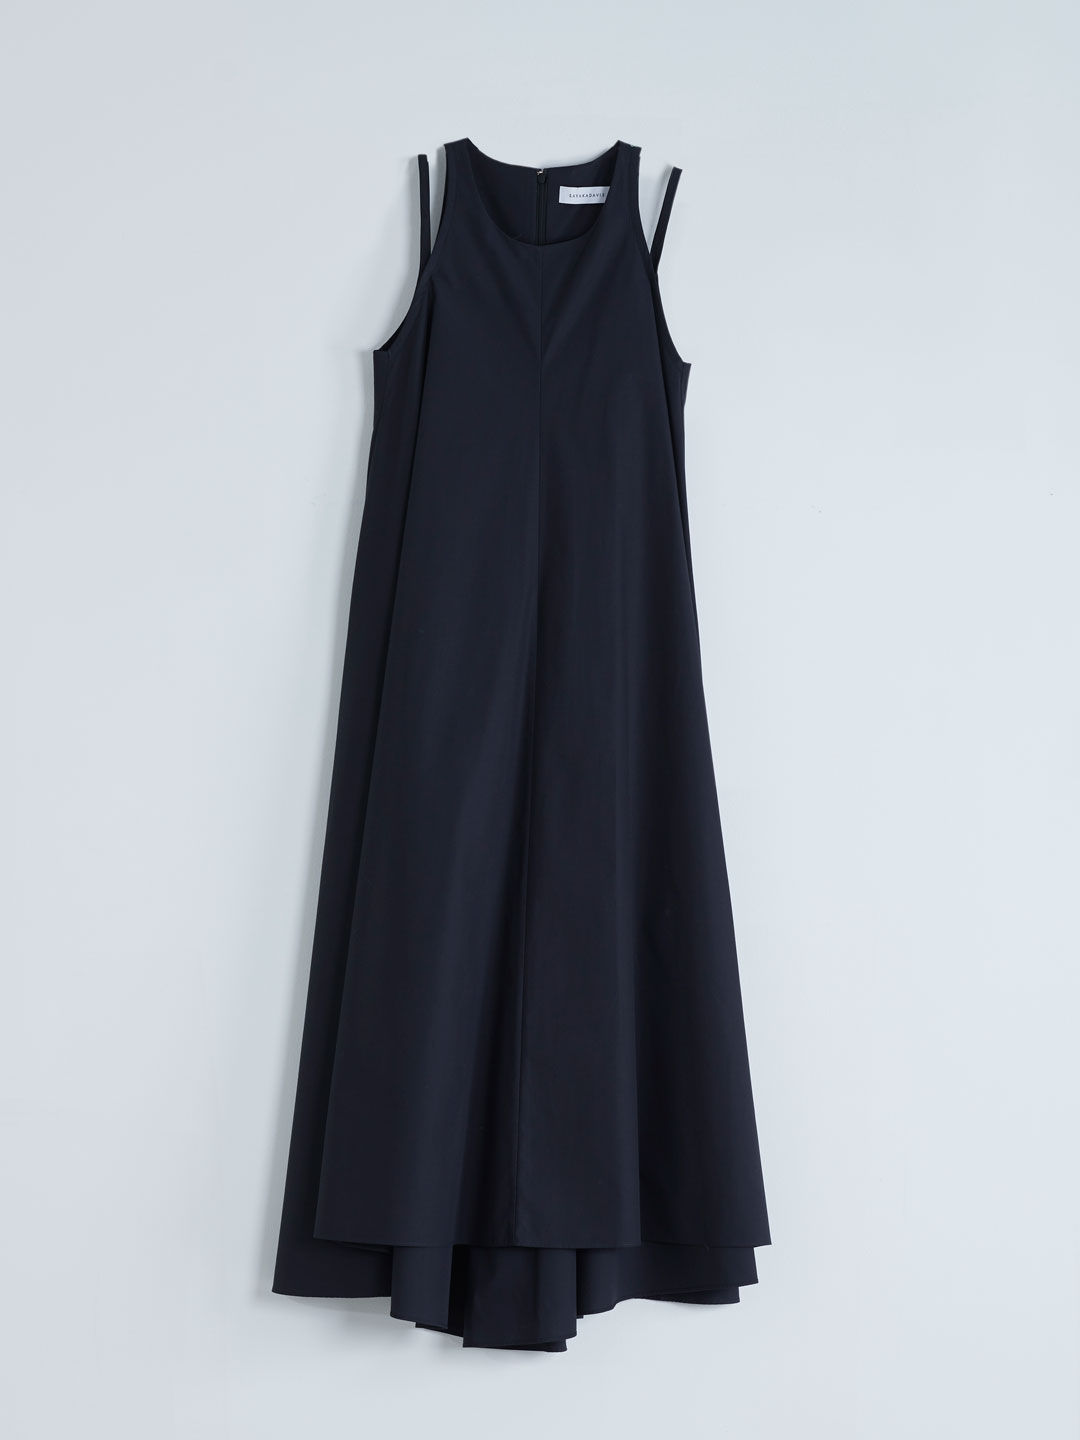 Double Strap Dress - Ink Black